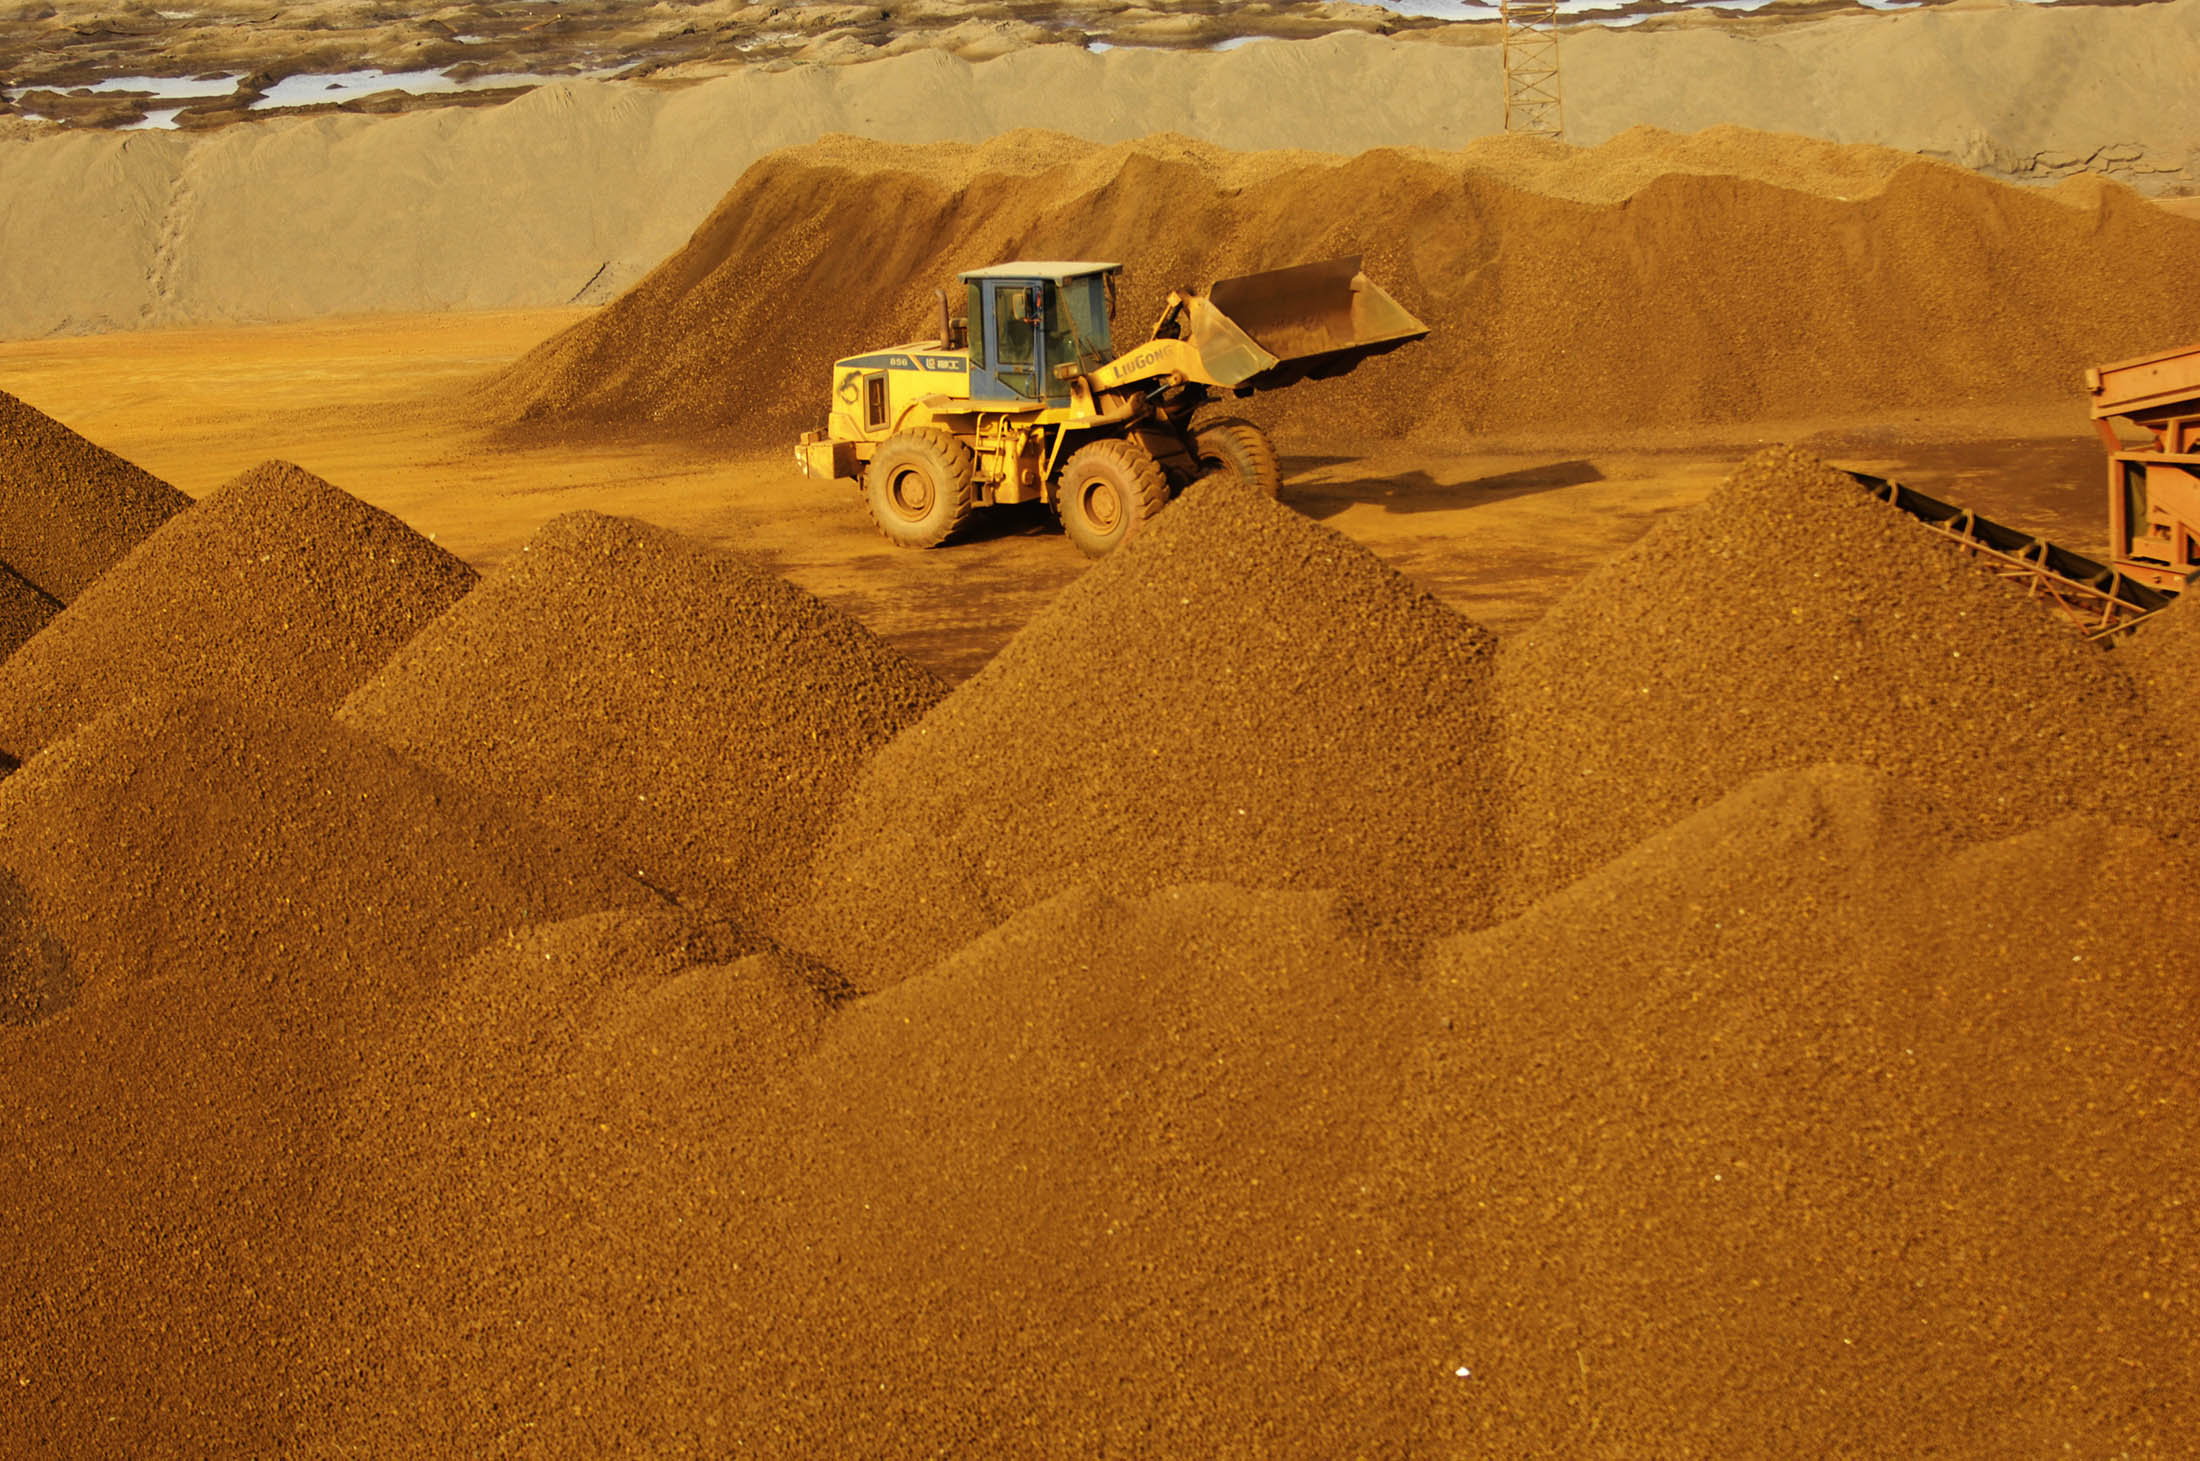 Iron Ore Bust Follows Hard on Heels of China's Speculative Boom - Bloomberg